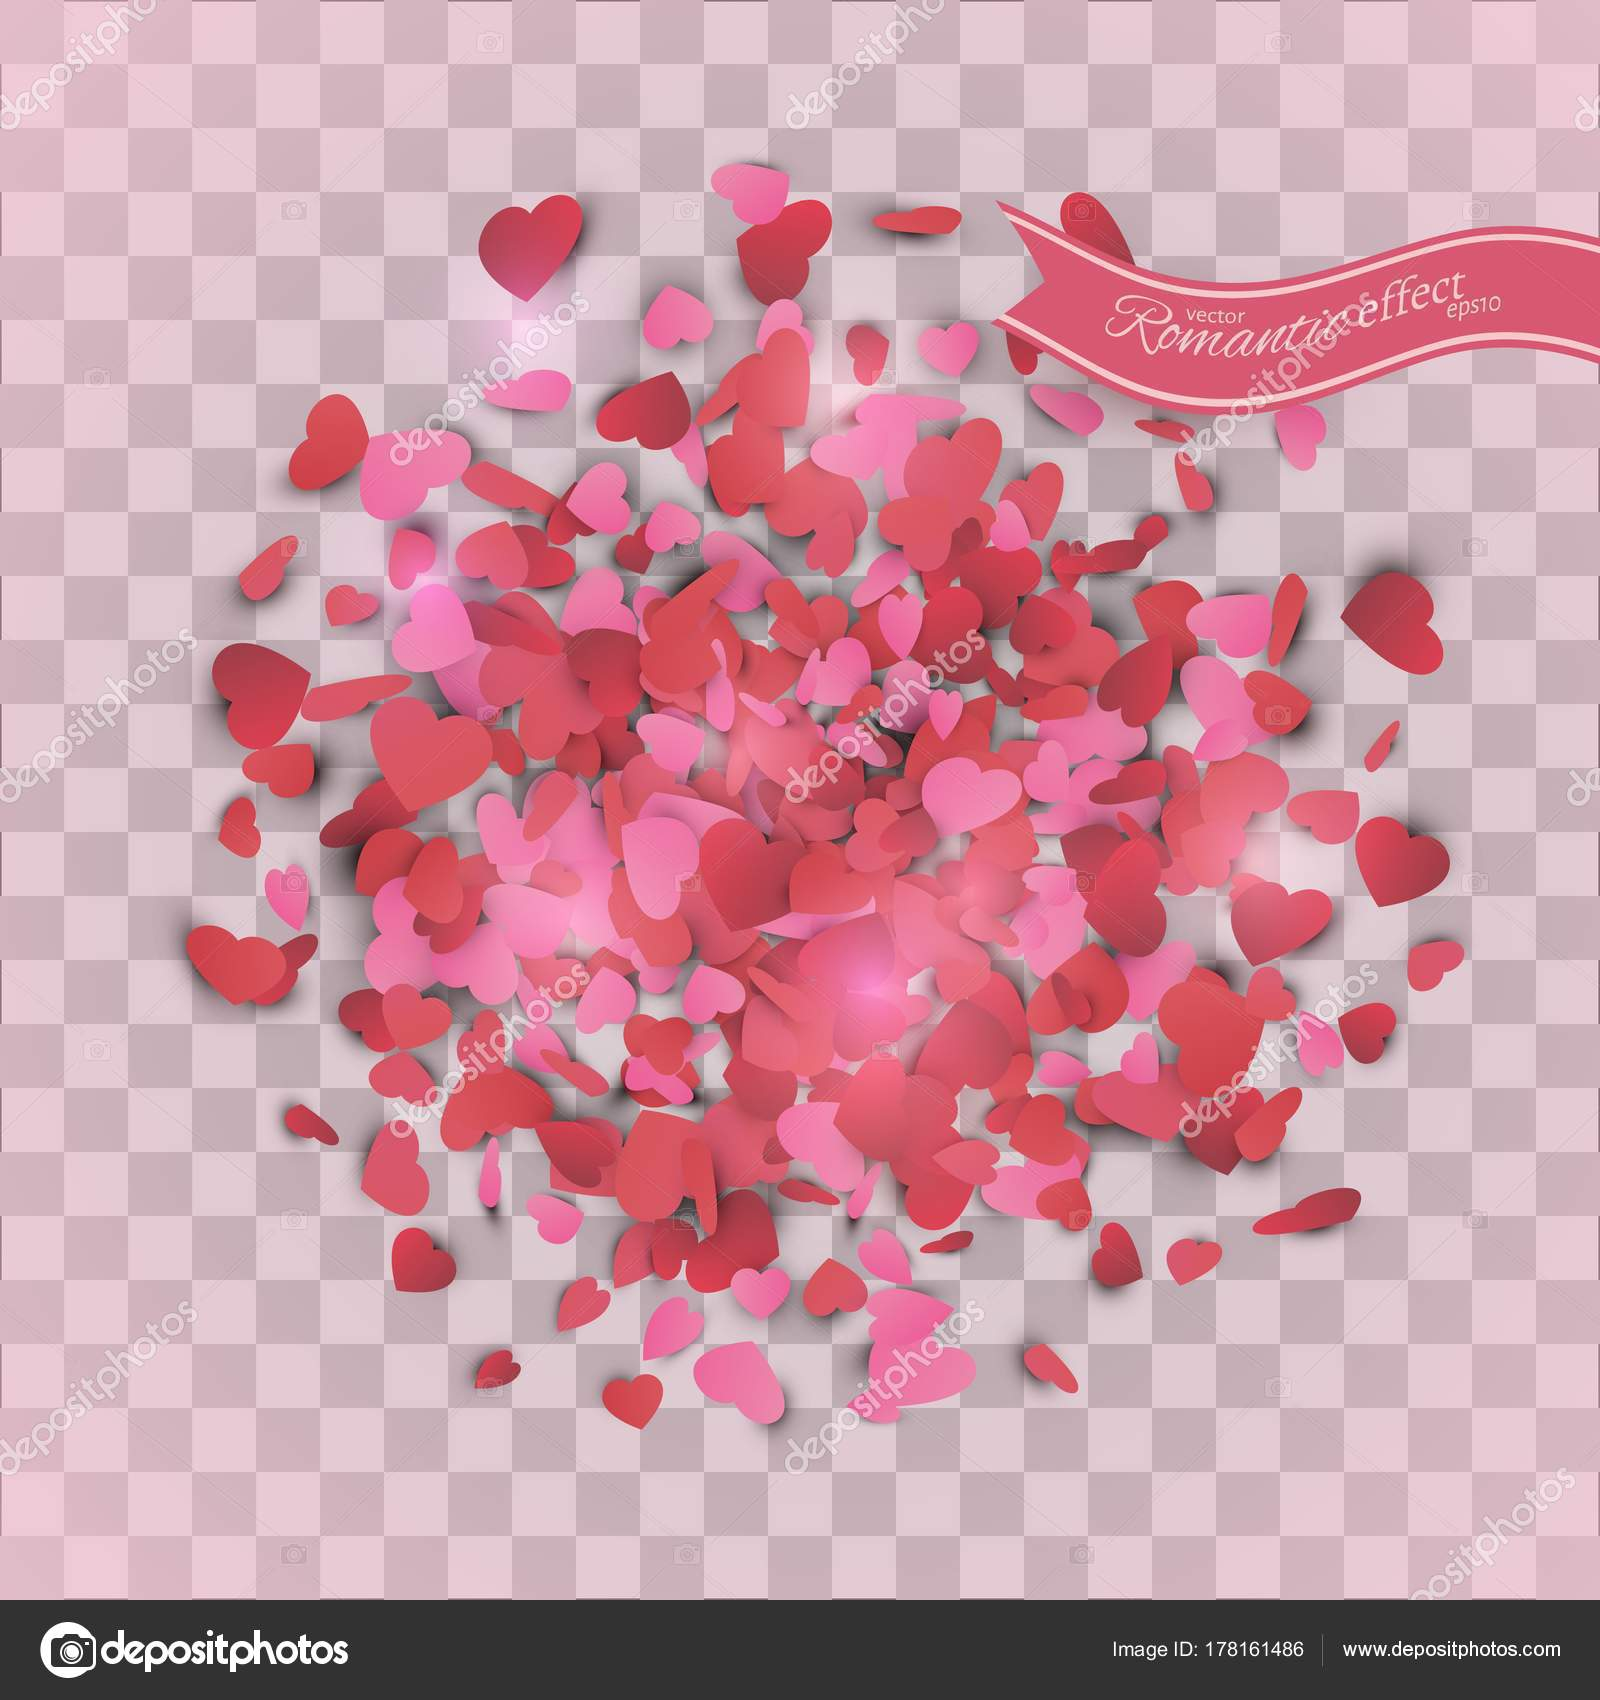 Heart Confetti Valentines Petals Falling Transparent Background